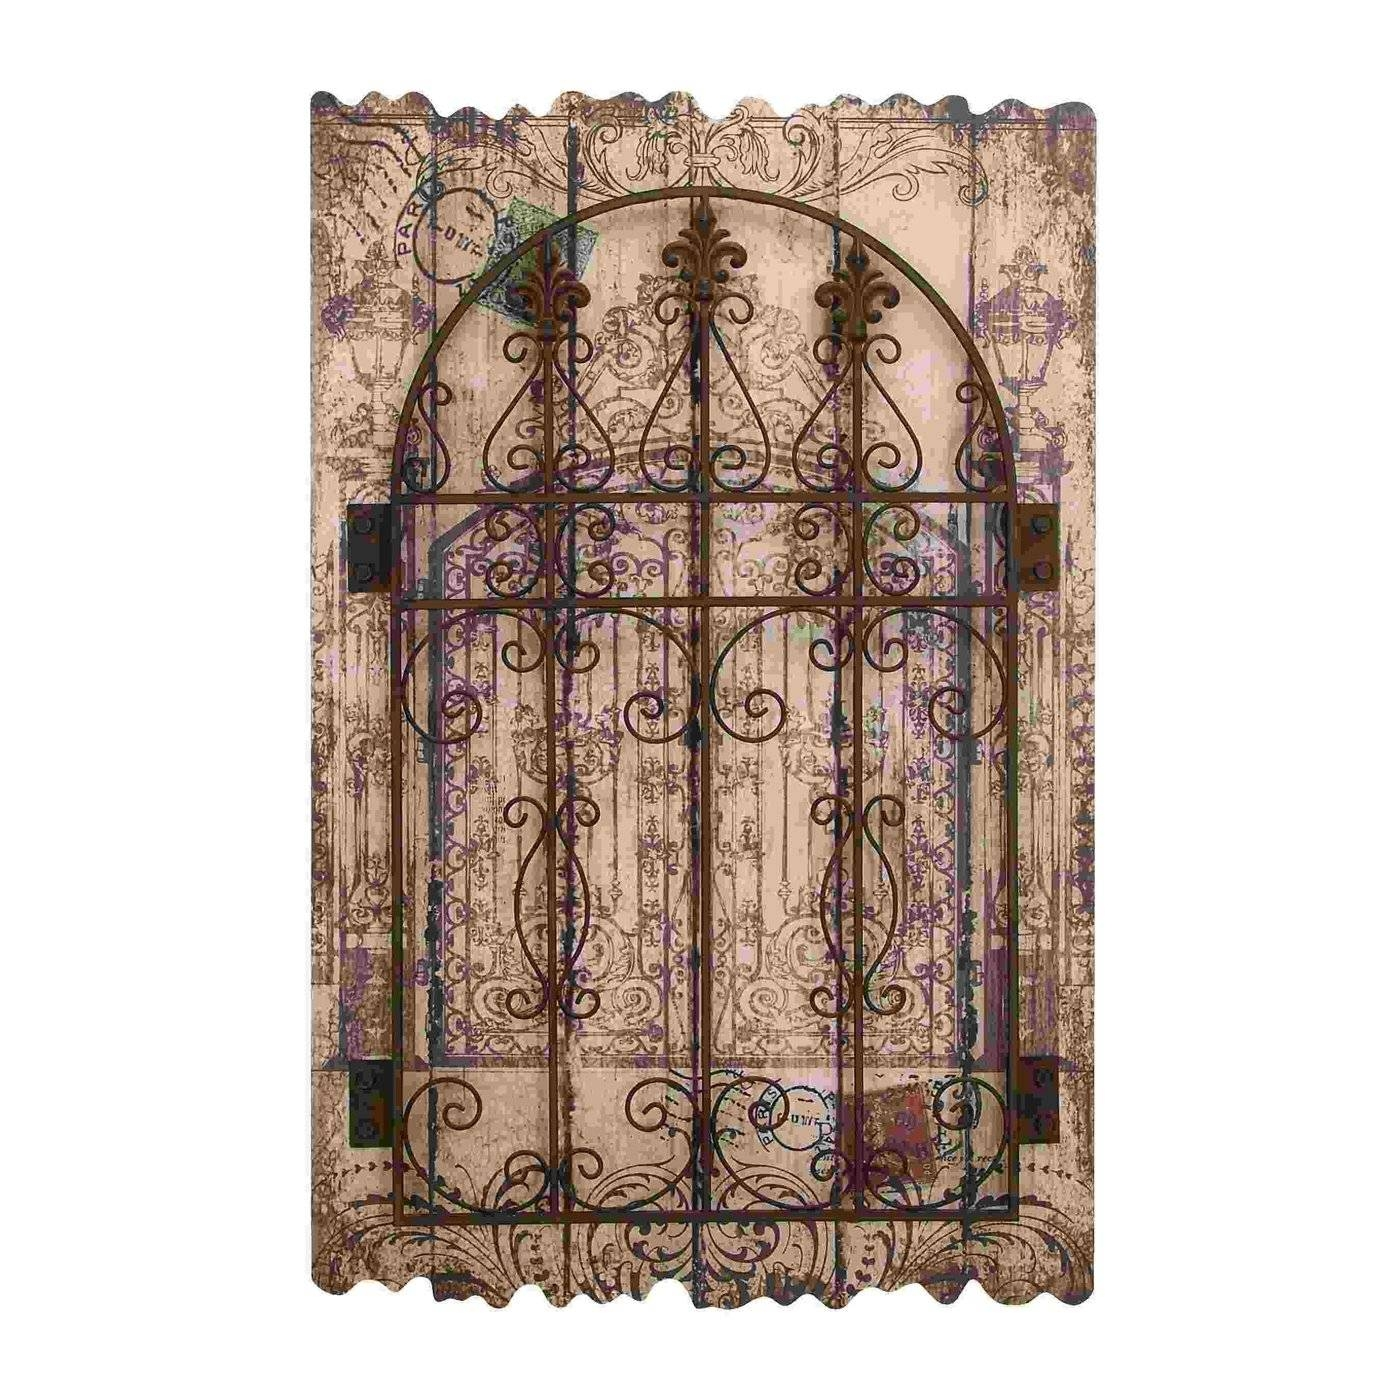 Wall Art Designs: Rustic Wood And Metal Wall Art Transitional Pertaining To 2017 Wood And Metal Wall Art (View 16 of 20)